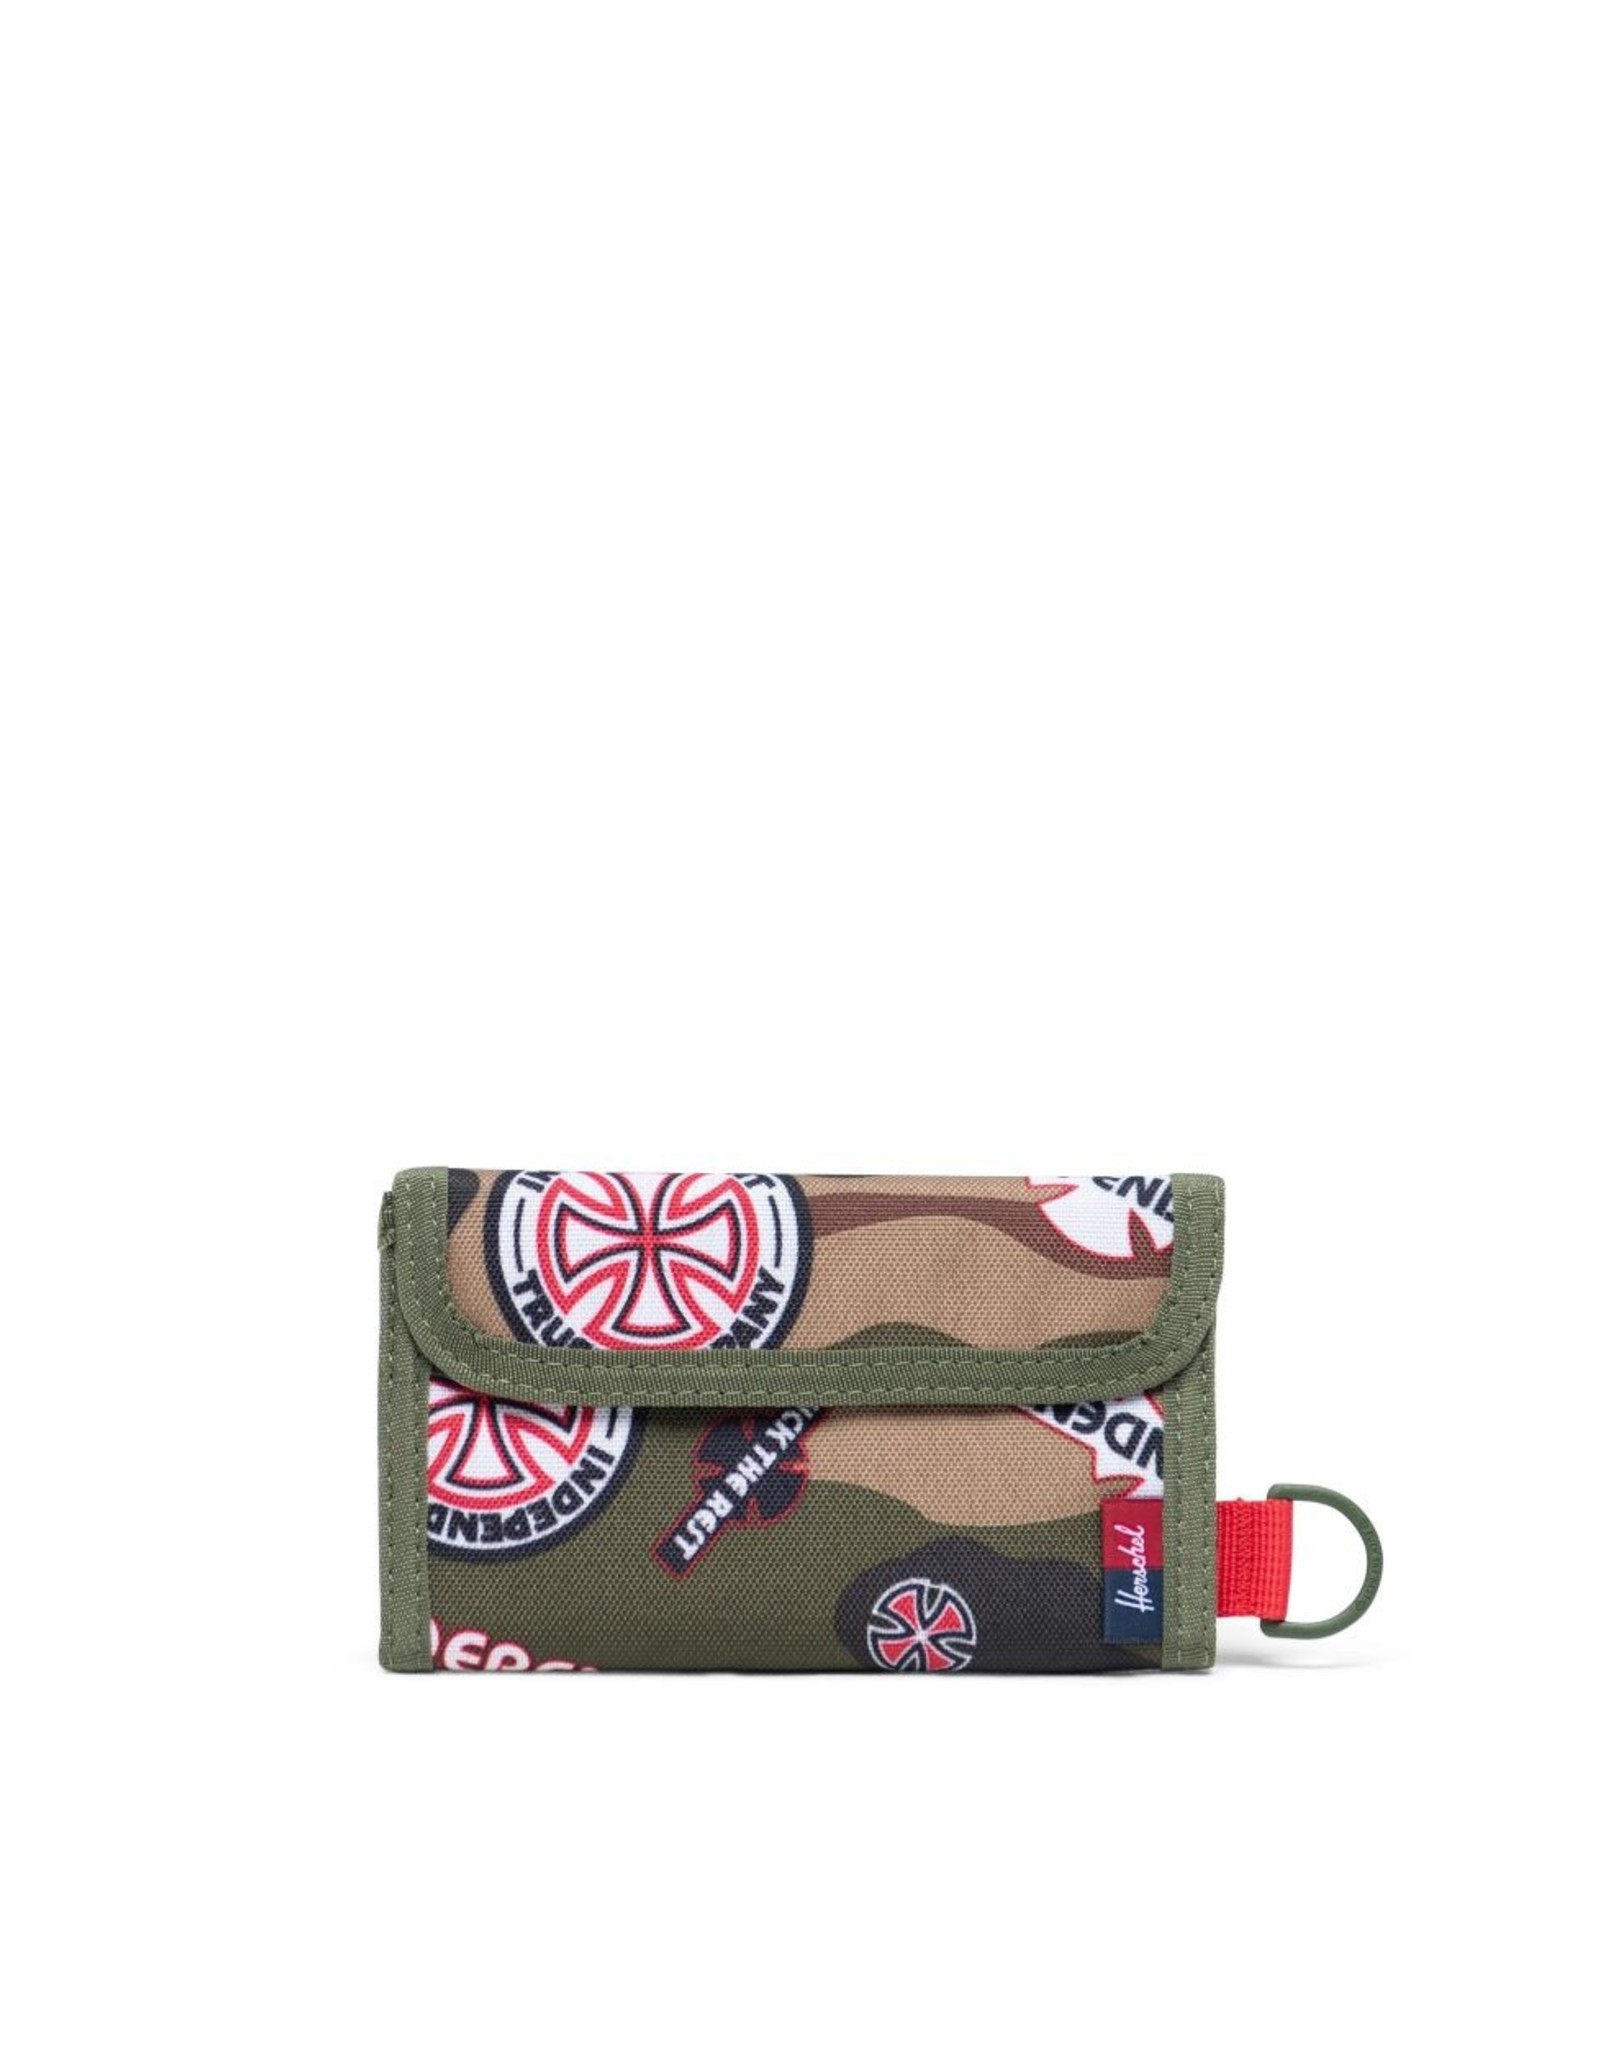 HERSCHEL HERSCHEL FAIRWAY WALLET - INDEPENDENT WOODLAND CAMO